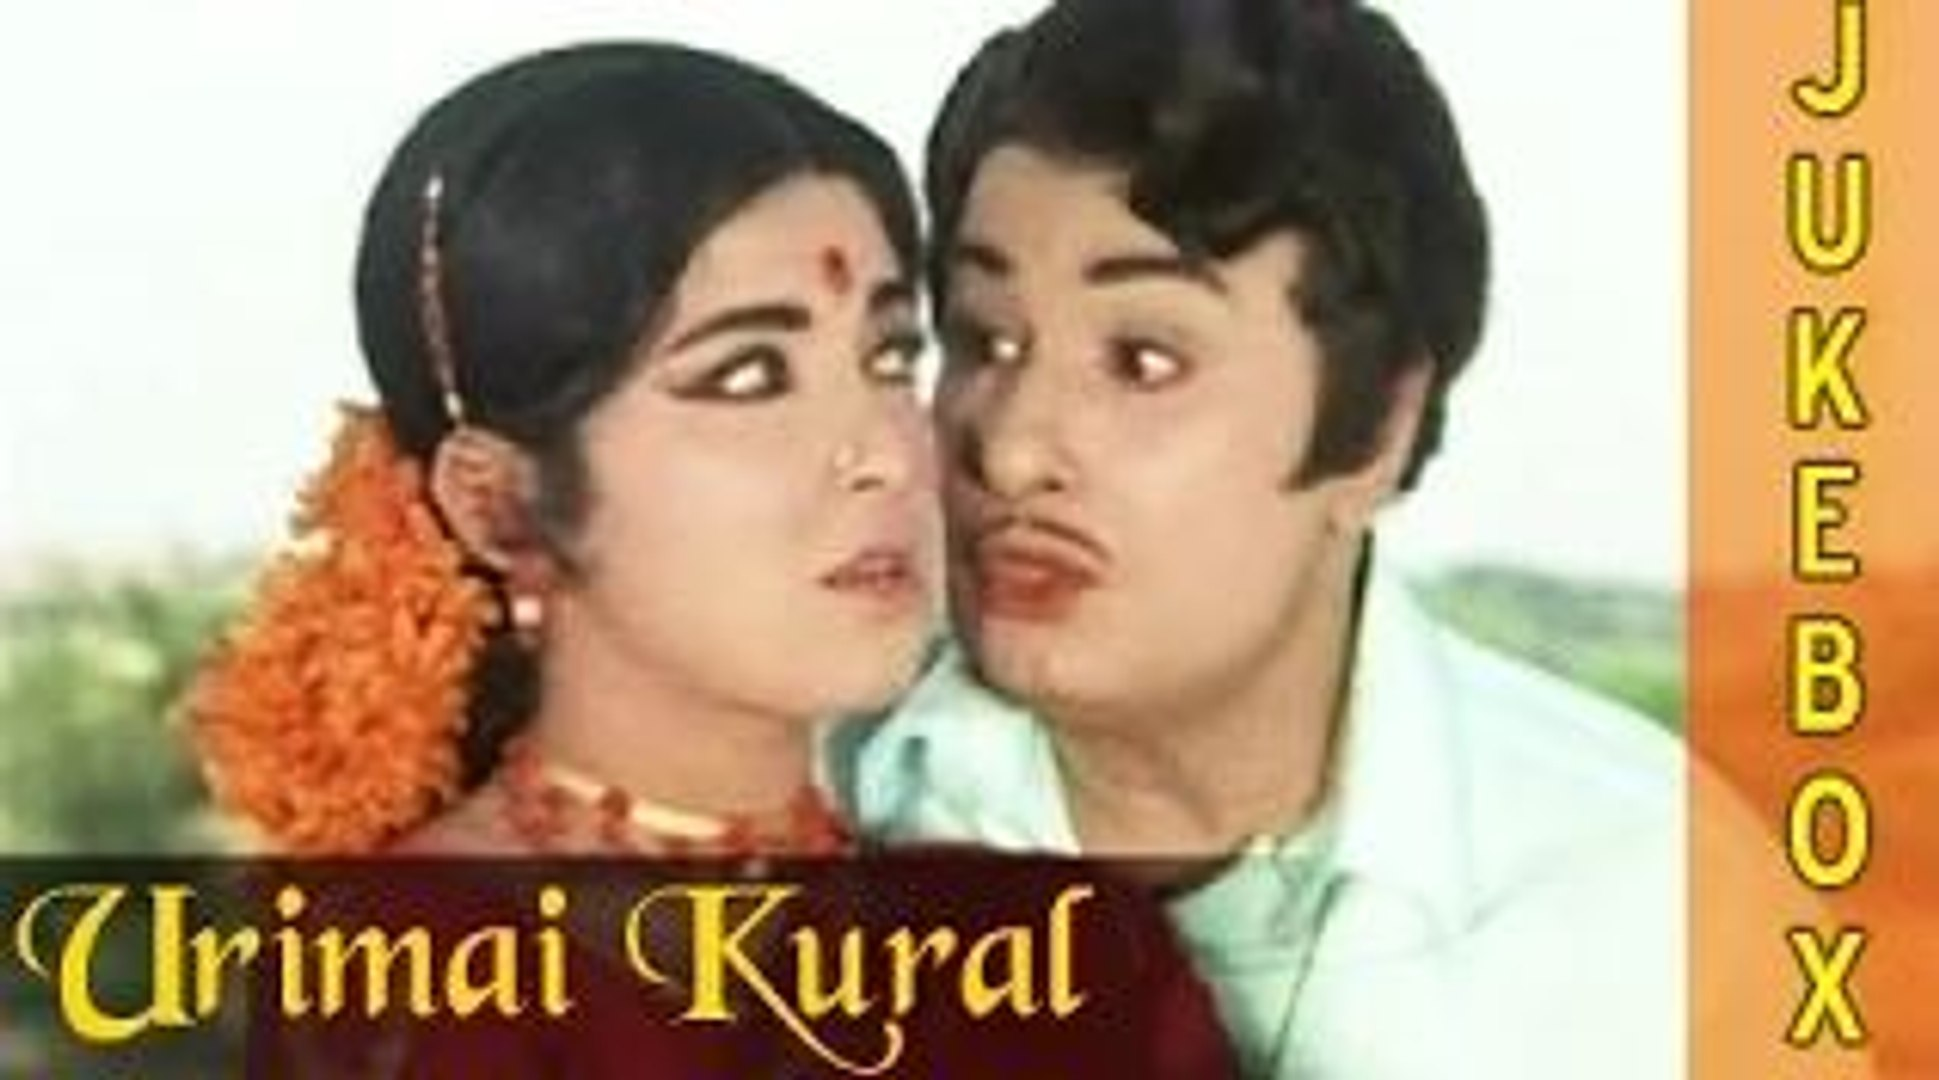 Urimai Kural Video Songs Jukebox - Tamil Video Songs Jukebox - M.S. Viswanathan Hits